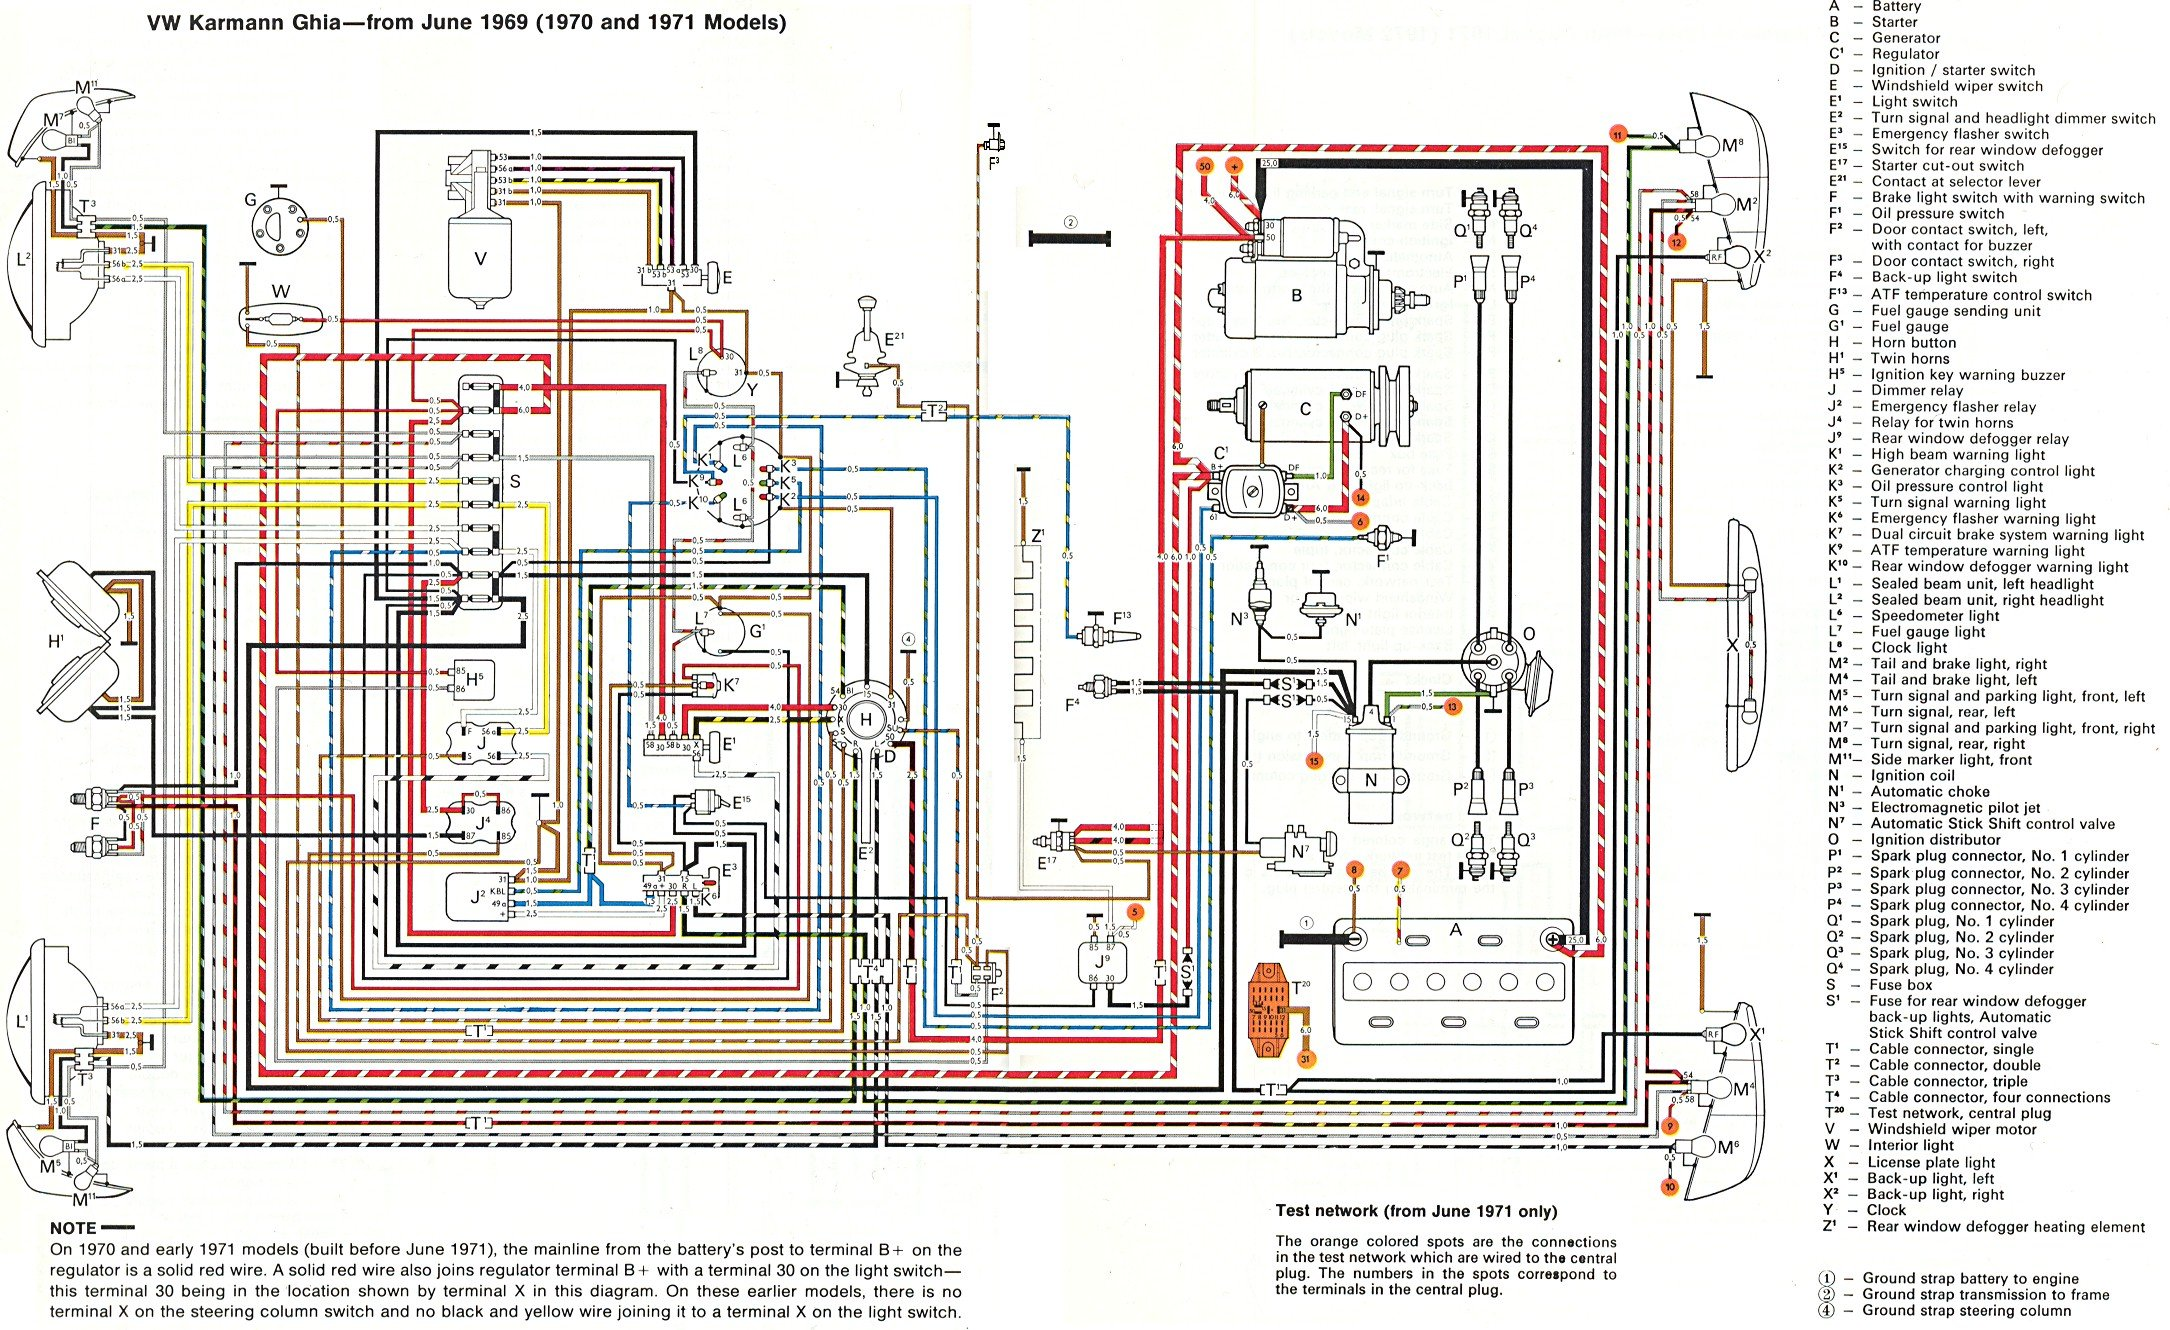 thesamba com karmann ghia wiring diagrams rh thesamba com Camaro Wiring Diagram 1970 VW Beetle Wiring Diagram